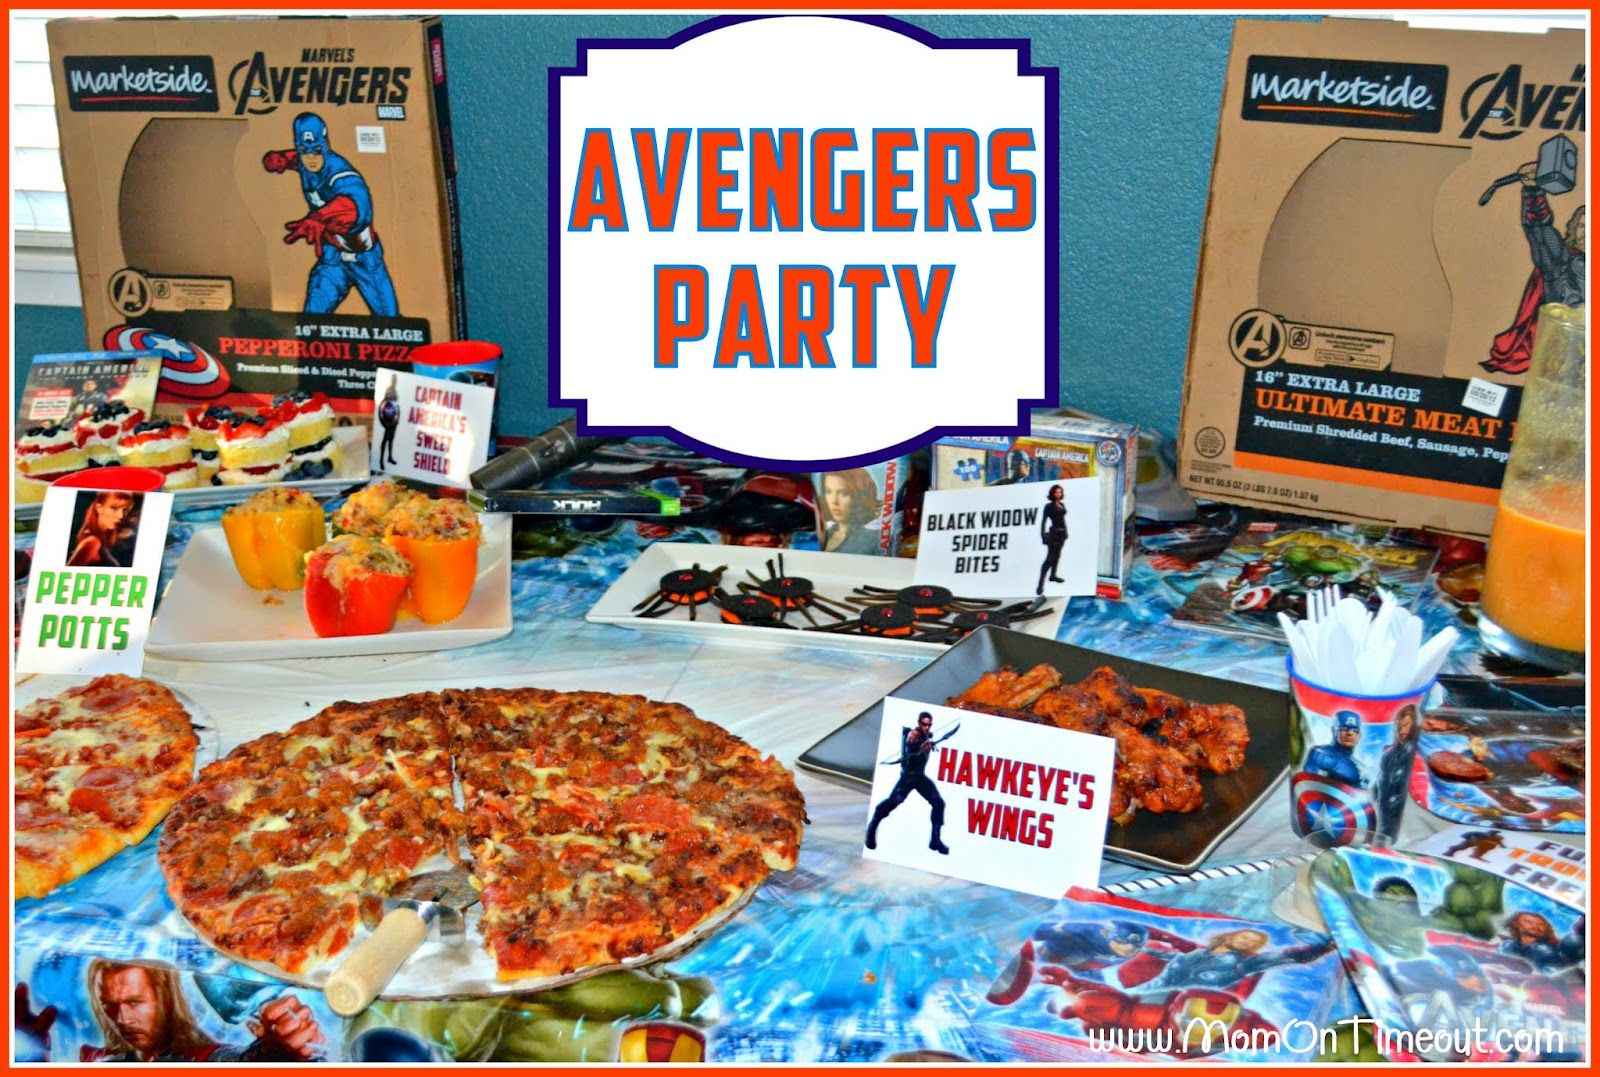 American Themed Dinner Party Ideas Part - 31: Black Widow Spider Bites, Pepper Pottu0027s Stuffed Peppers, Captain America  Shield Cakes, Hawkeyeu0027s